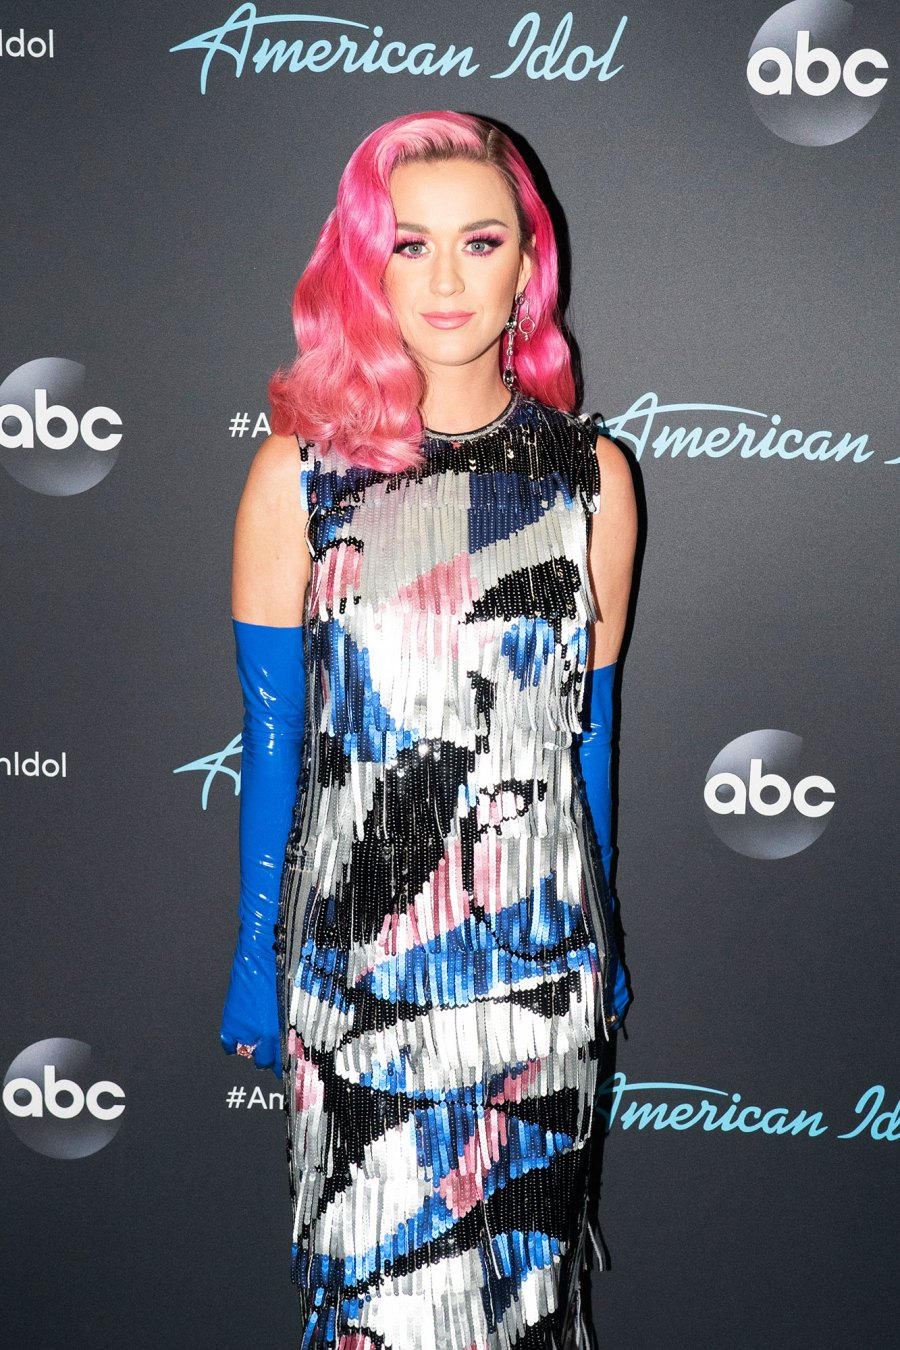 Katy Perry Go Bold in Brightly Colored Wigs